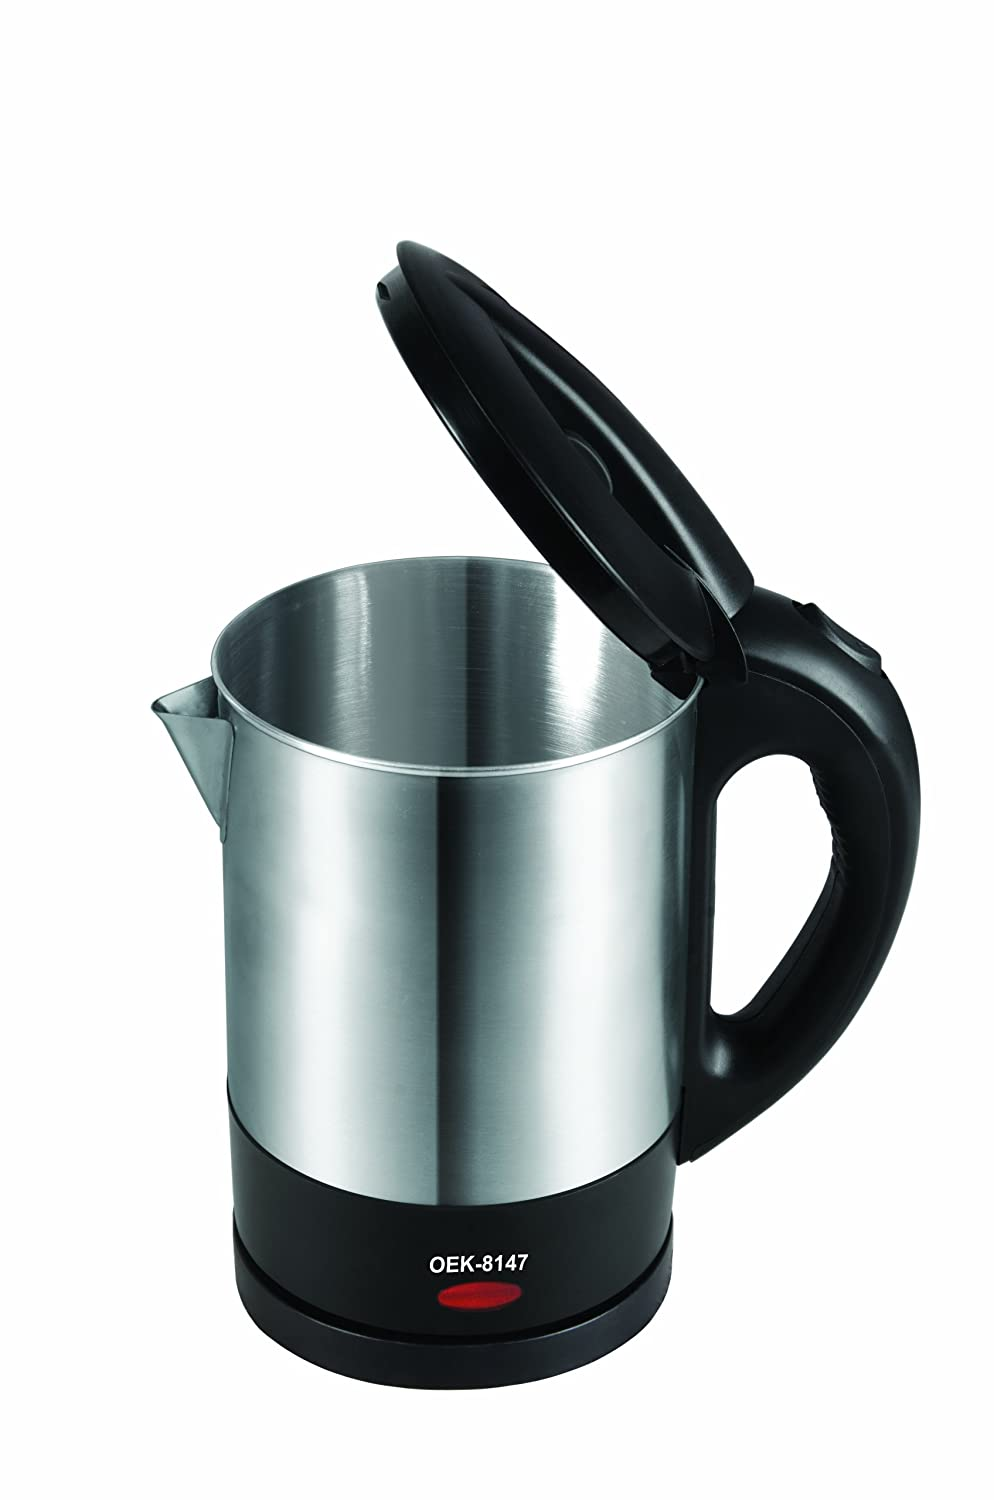 Orpat Oek 8147 Electric Kettle Prices And Ratings